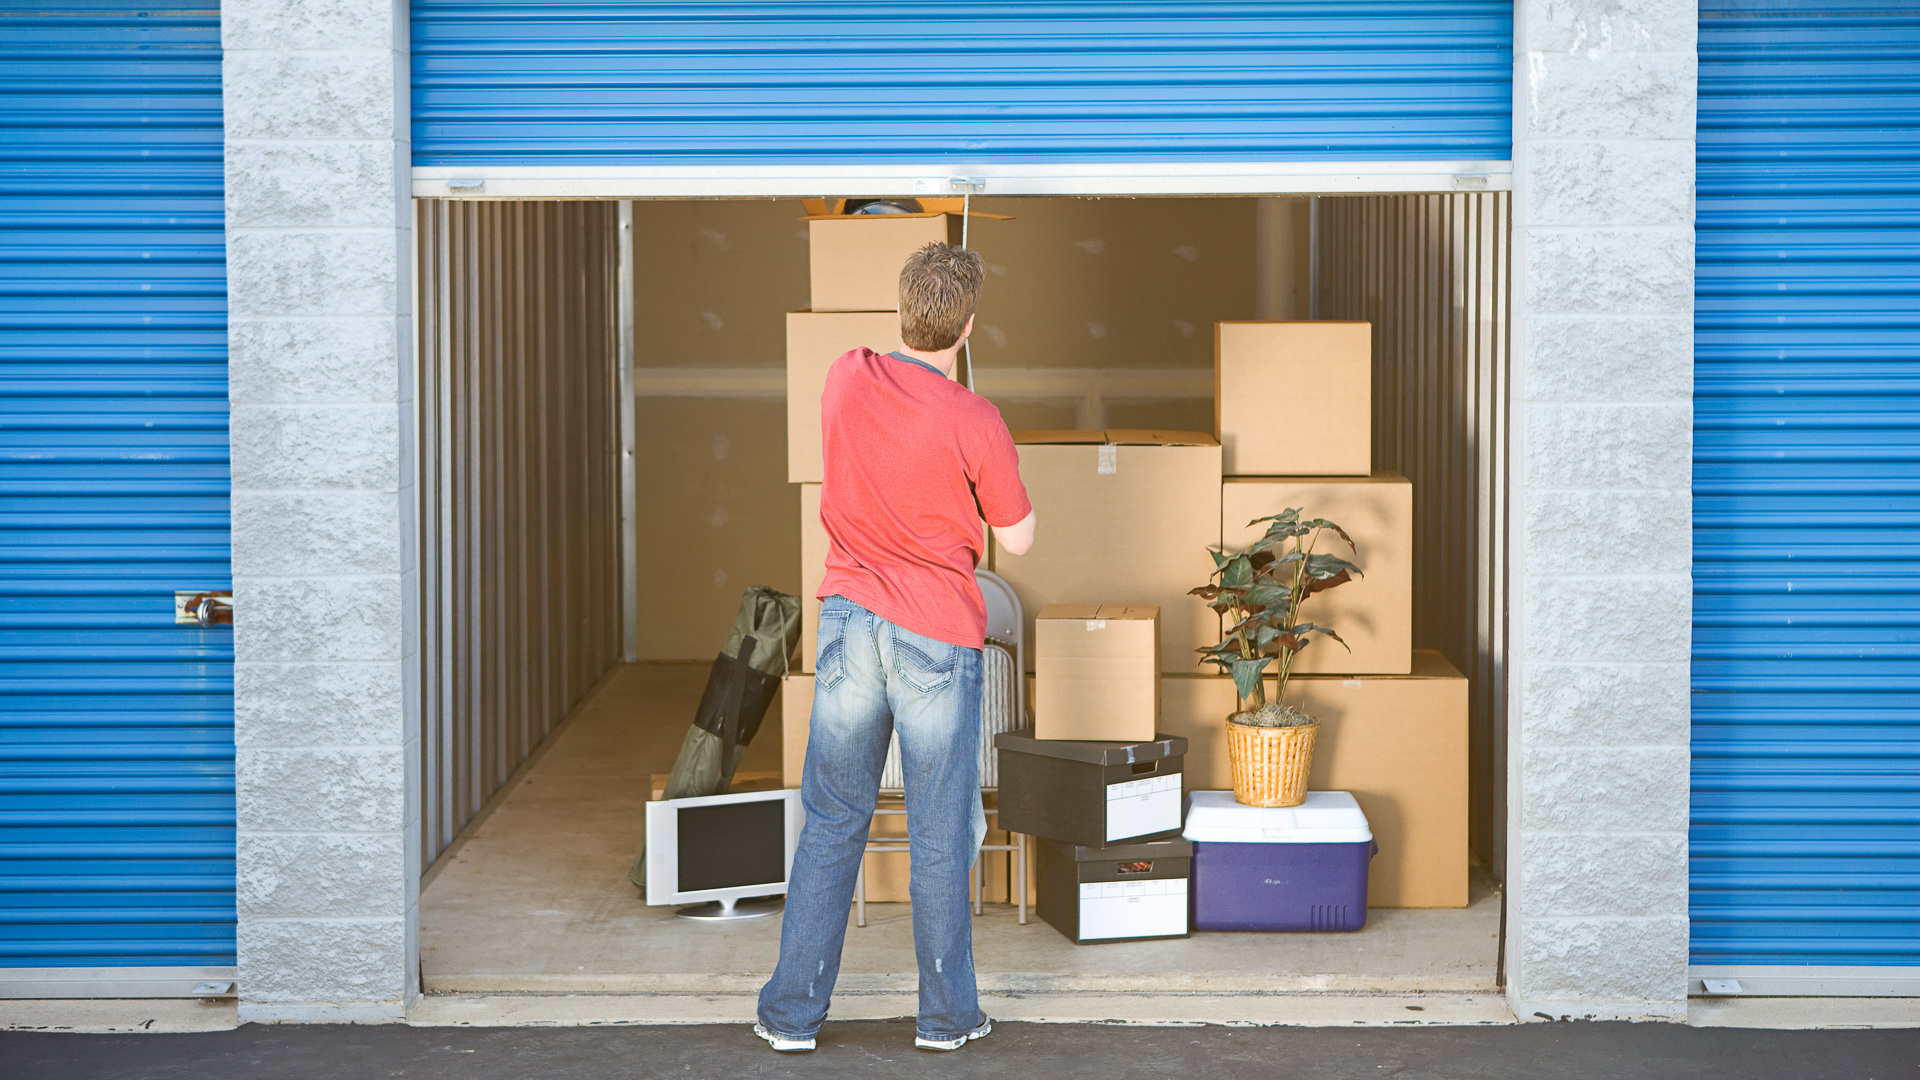 & Why Paying for a Storage Unit Is Always a Terrible Idea | GOBankingRates